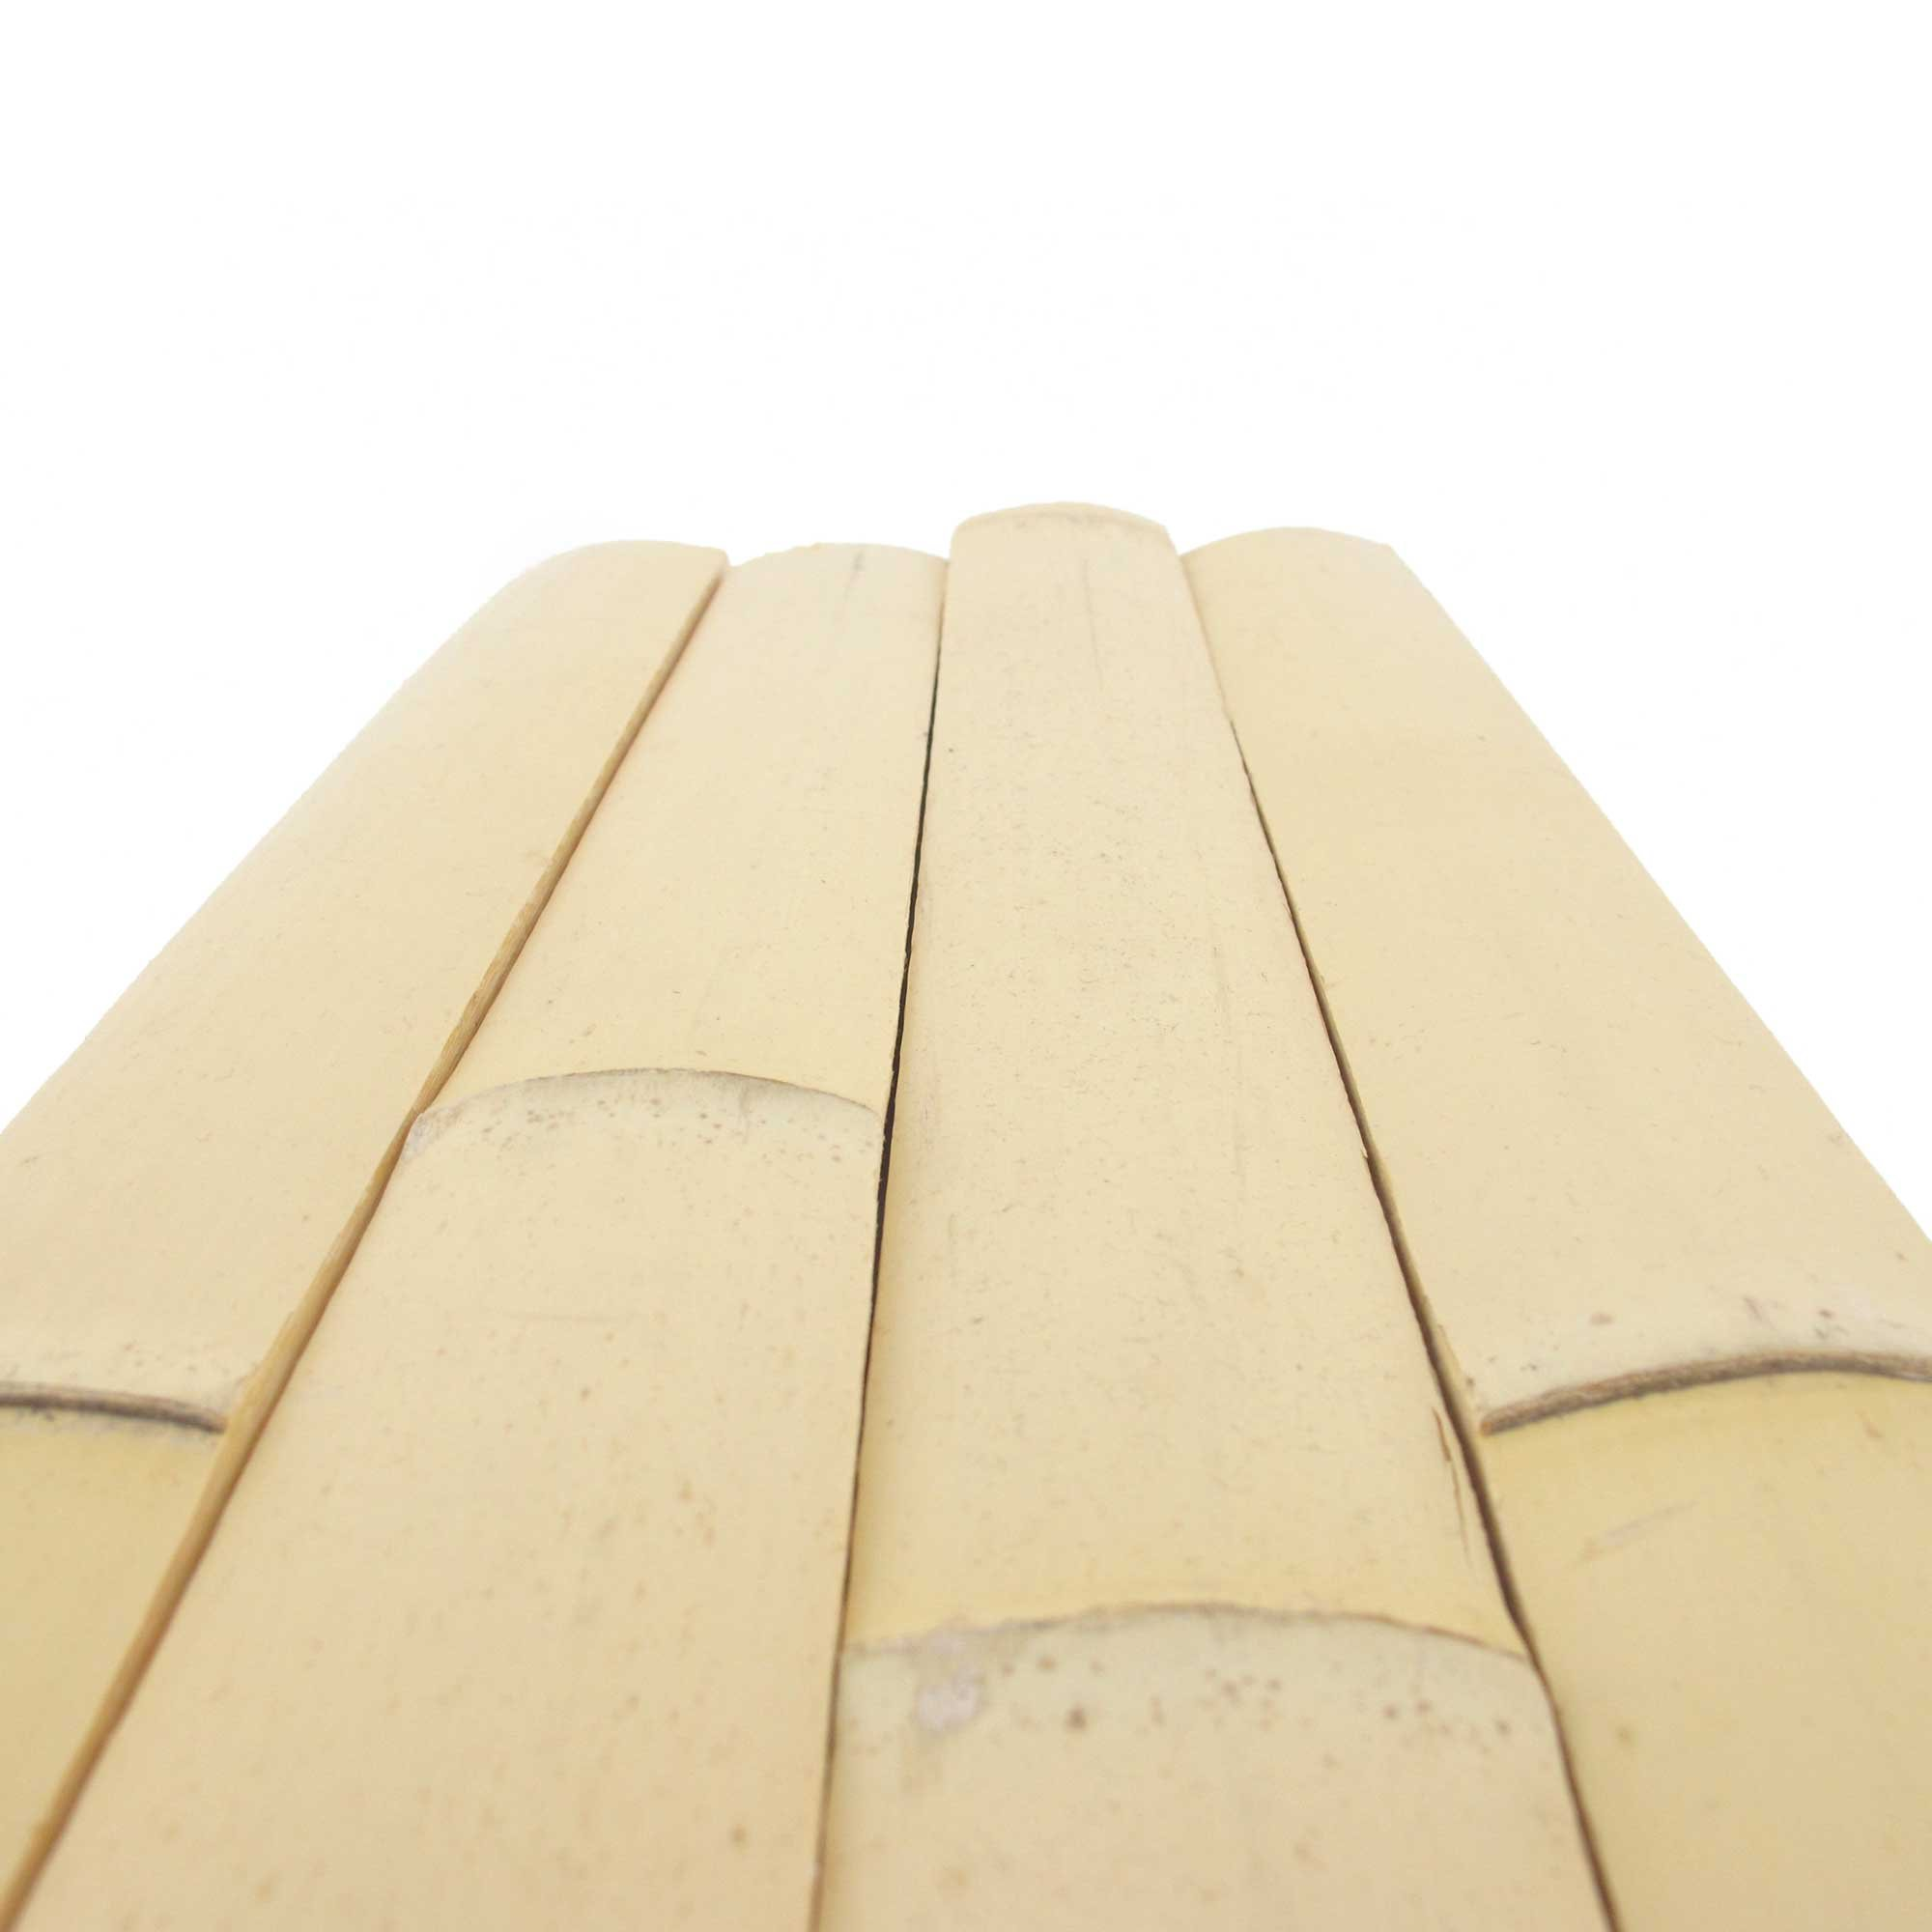 Bamboo Slats For Walls, Ceiling, Fences, Home Projects 94.4'' x 1.57'' - Bundle of 30 - BambooMN by BambooMN